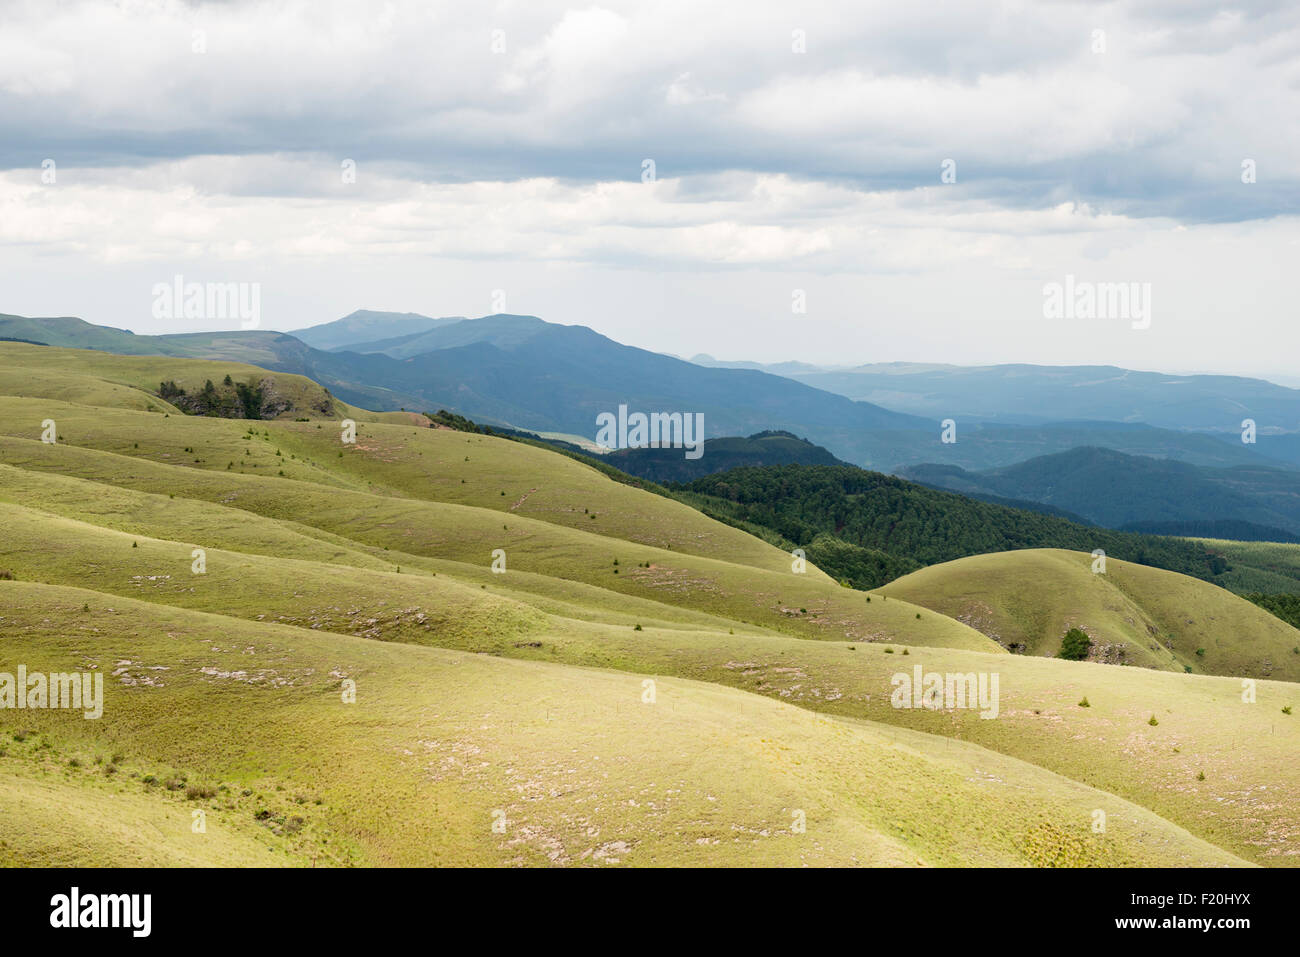 Hilly landscape in South Africa - Stock Image